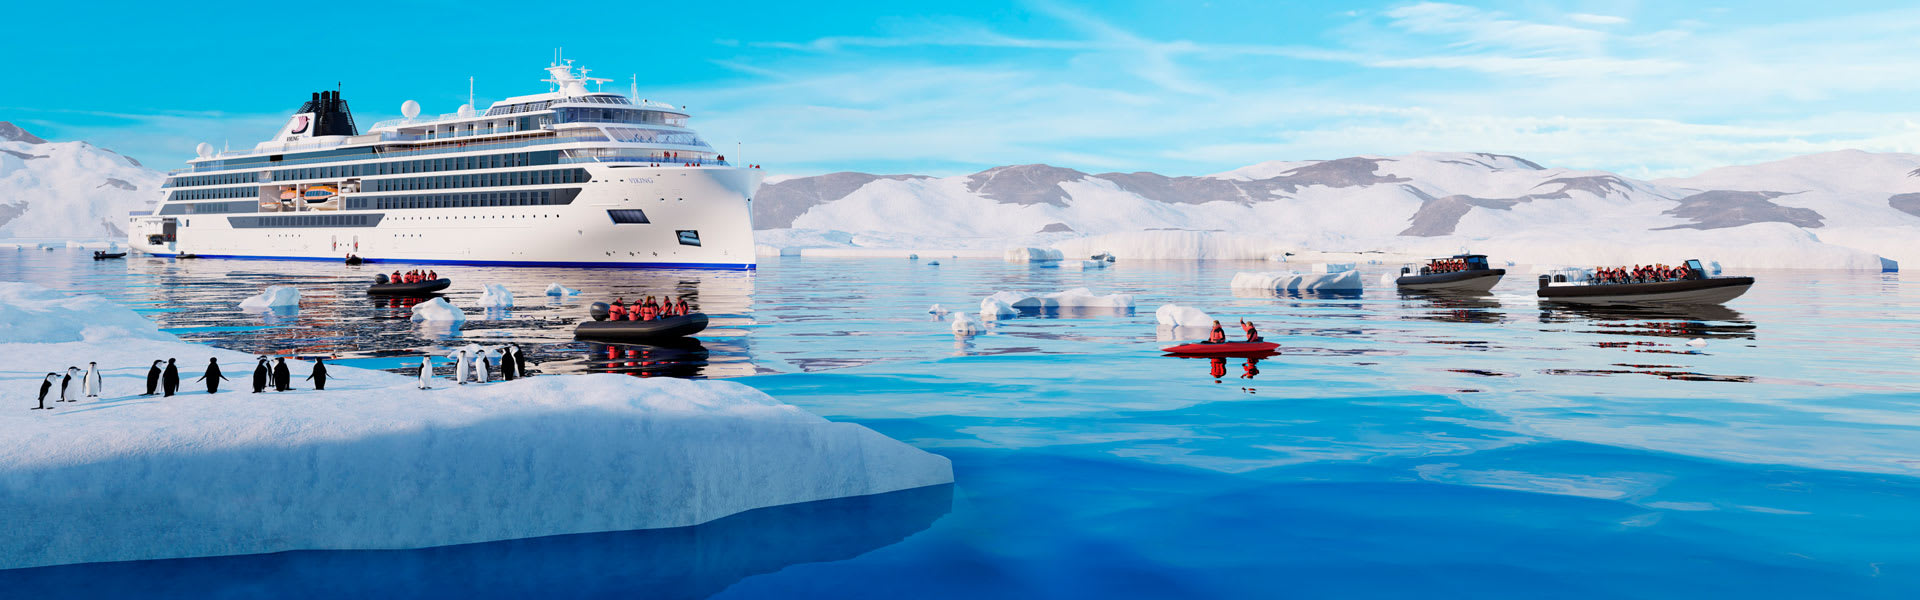 Viking Expeditions Cruise Ship in Antarctica